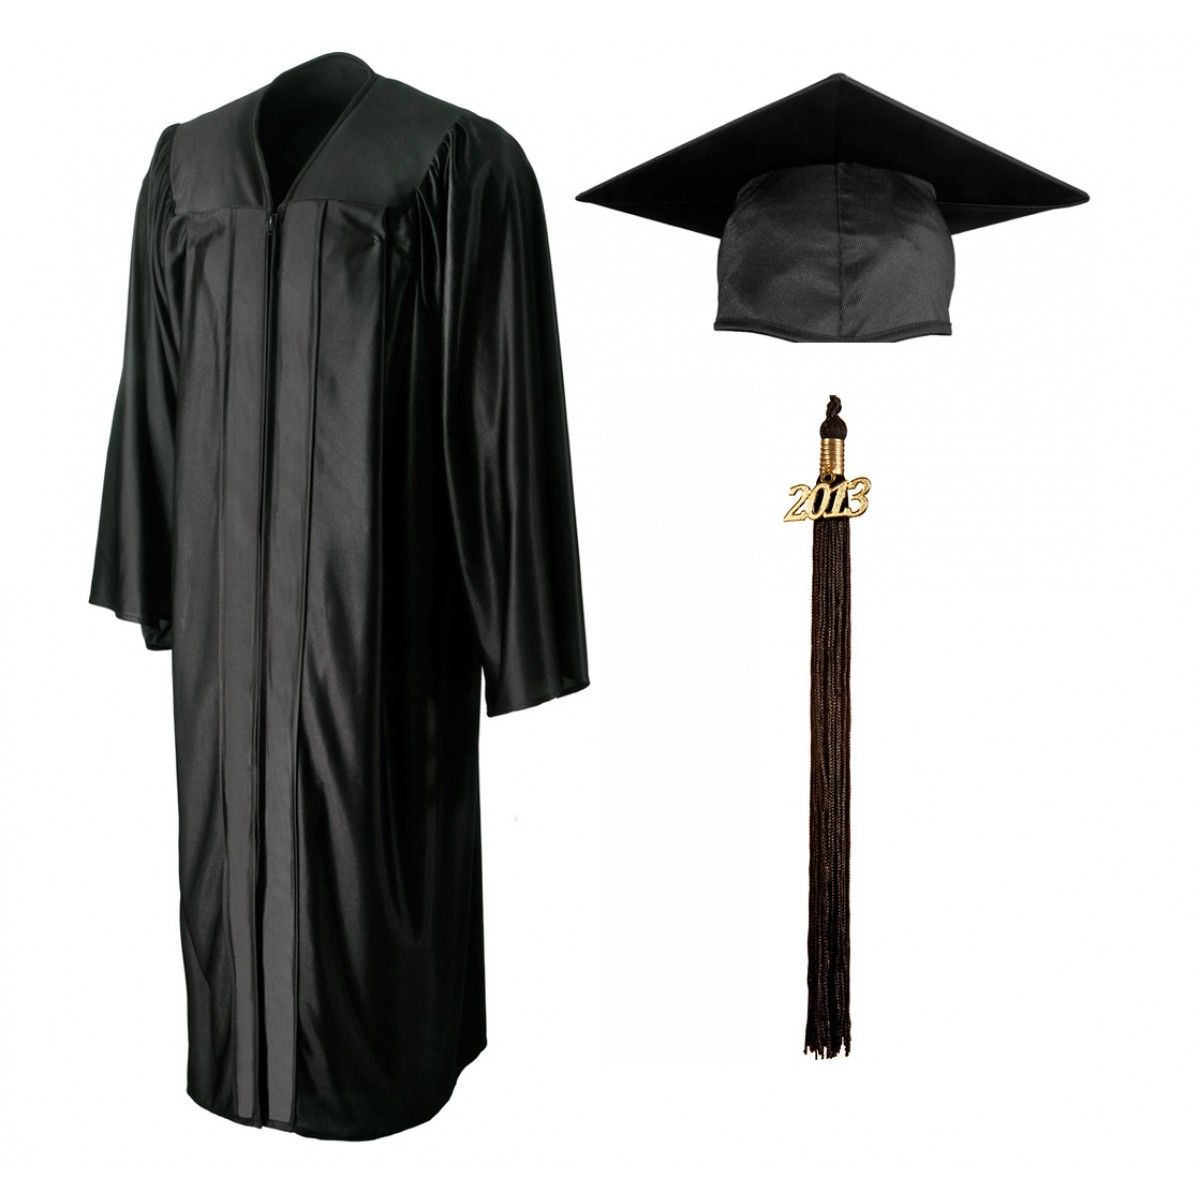 Shiny Black Cap & Gown | Pinterest | Products